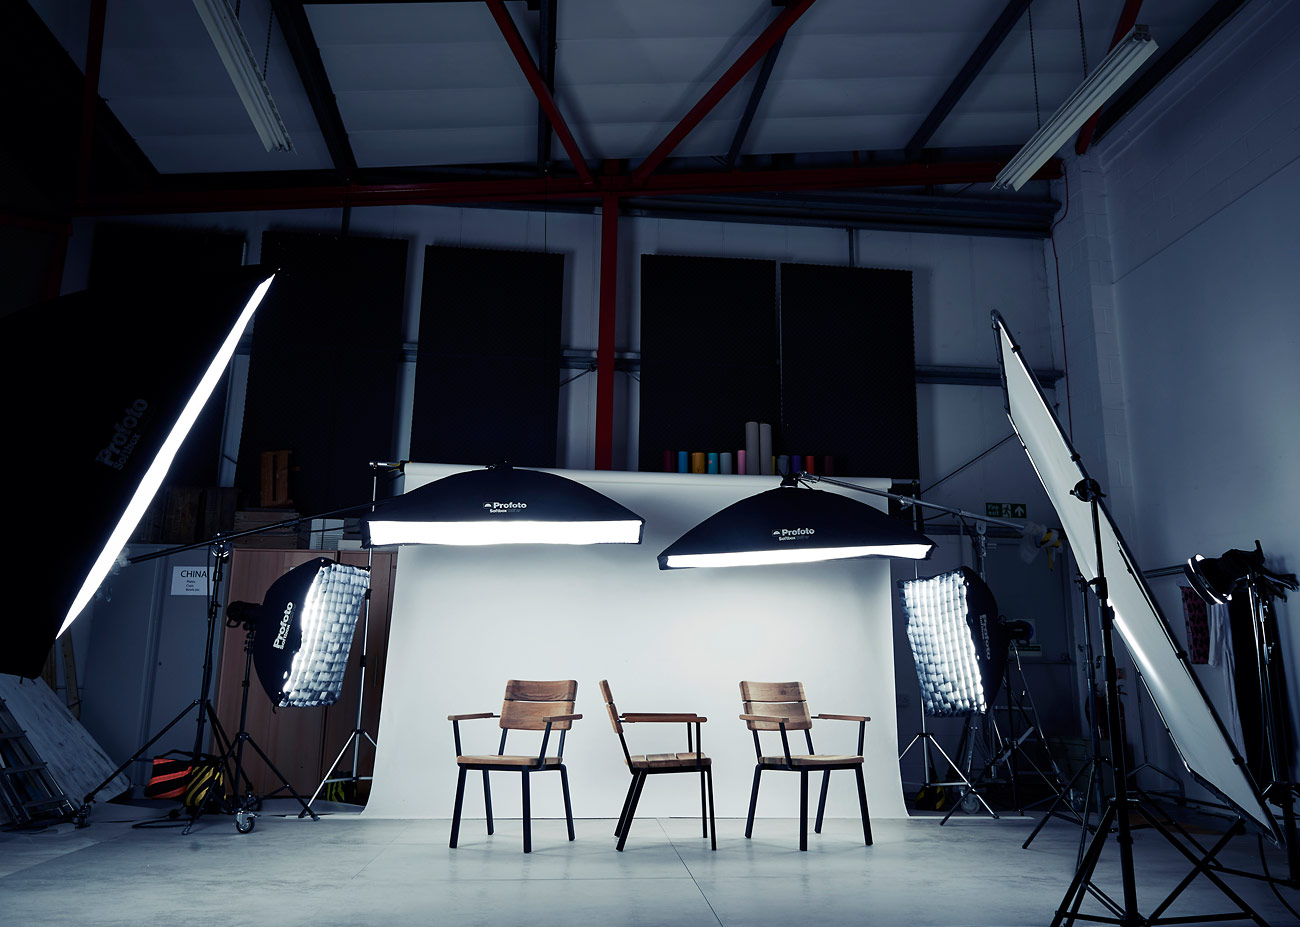 Behind the scenes on a furniture photoshoot for Barlow Tyrie